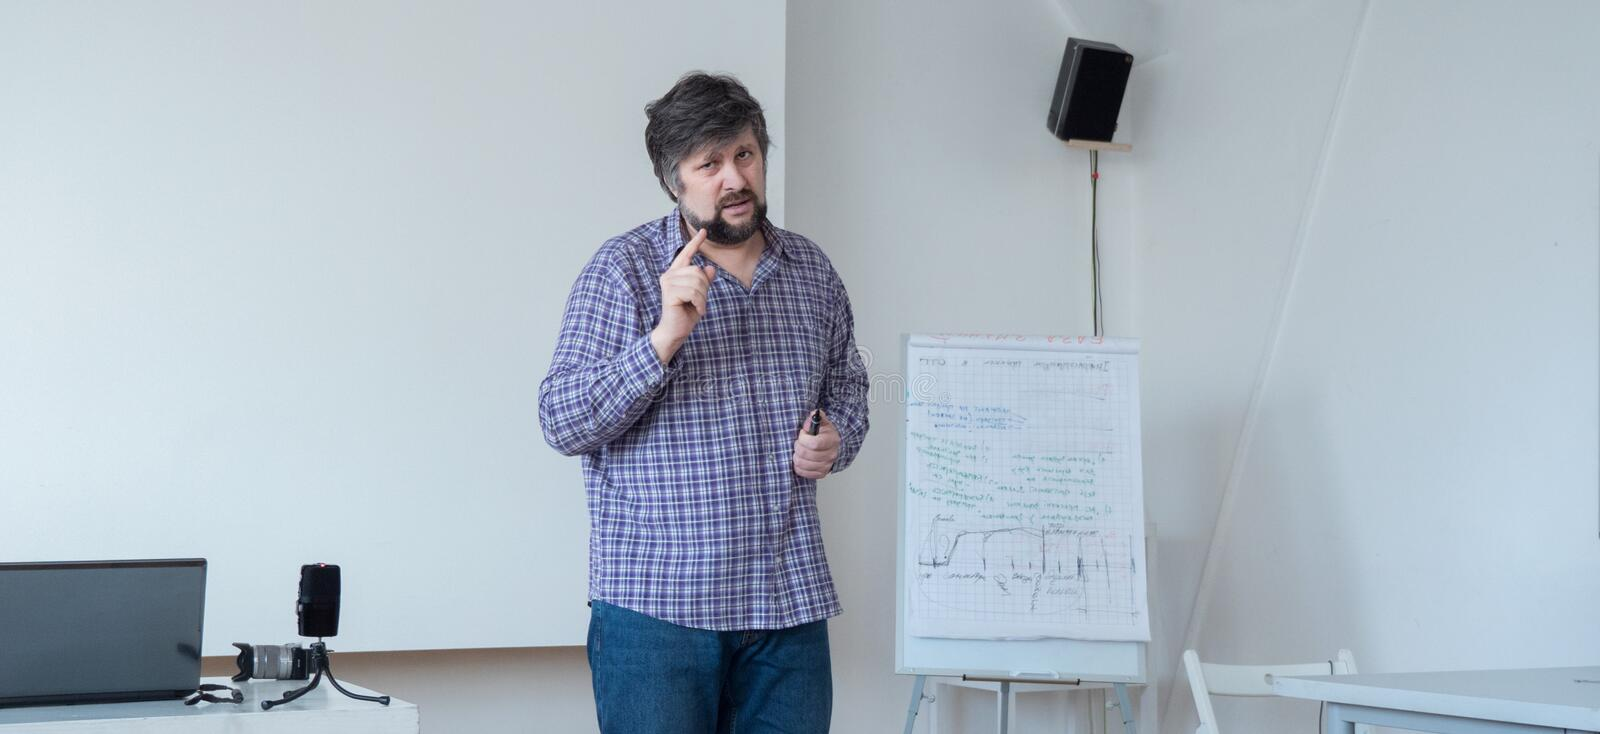 Professor with beard and mustache Screensaver web page. Male, teacher warning. Teacher in casual clothing teaching stock photos